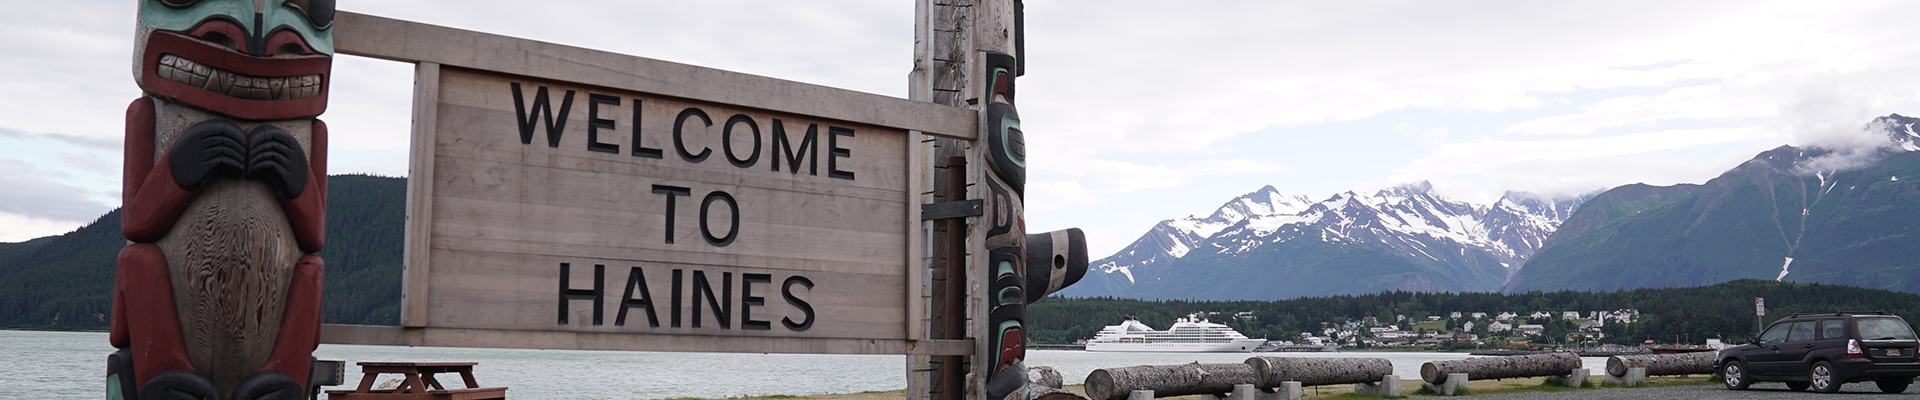 Welcome sign to Haines